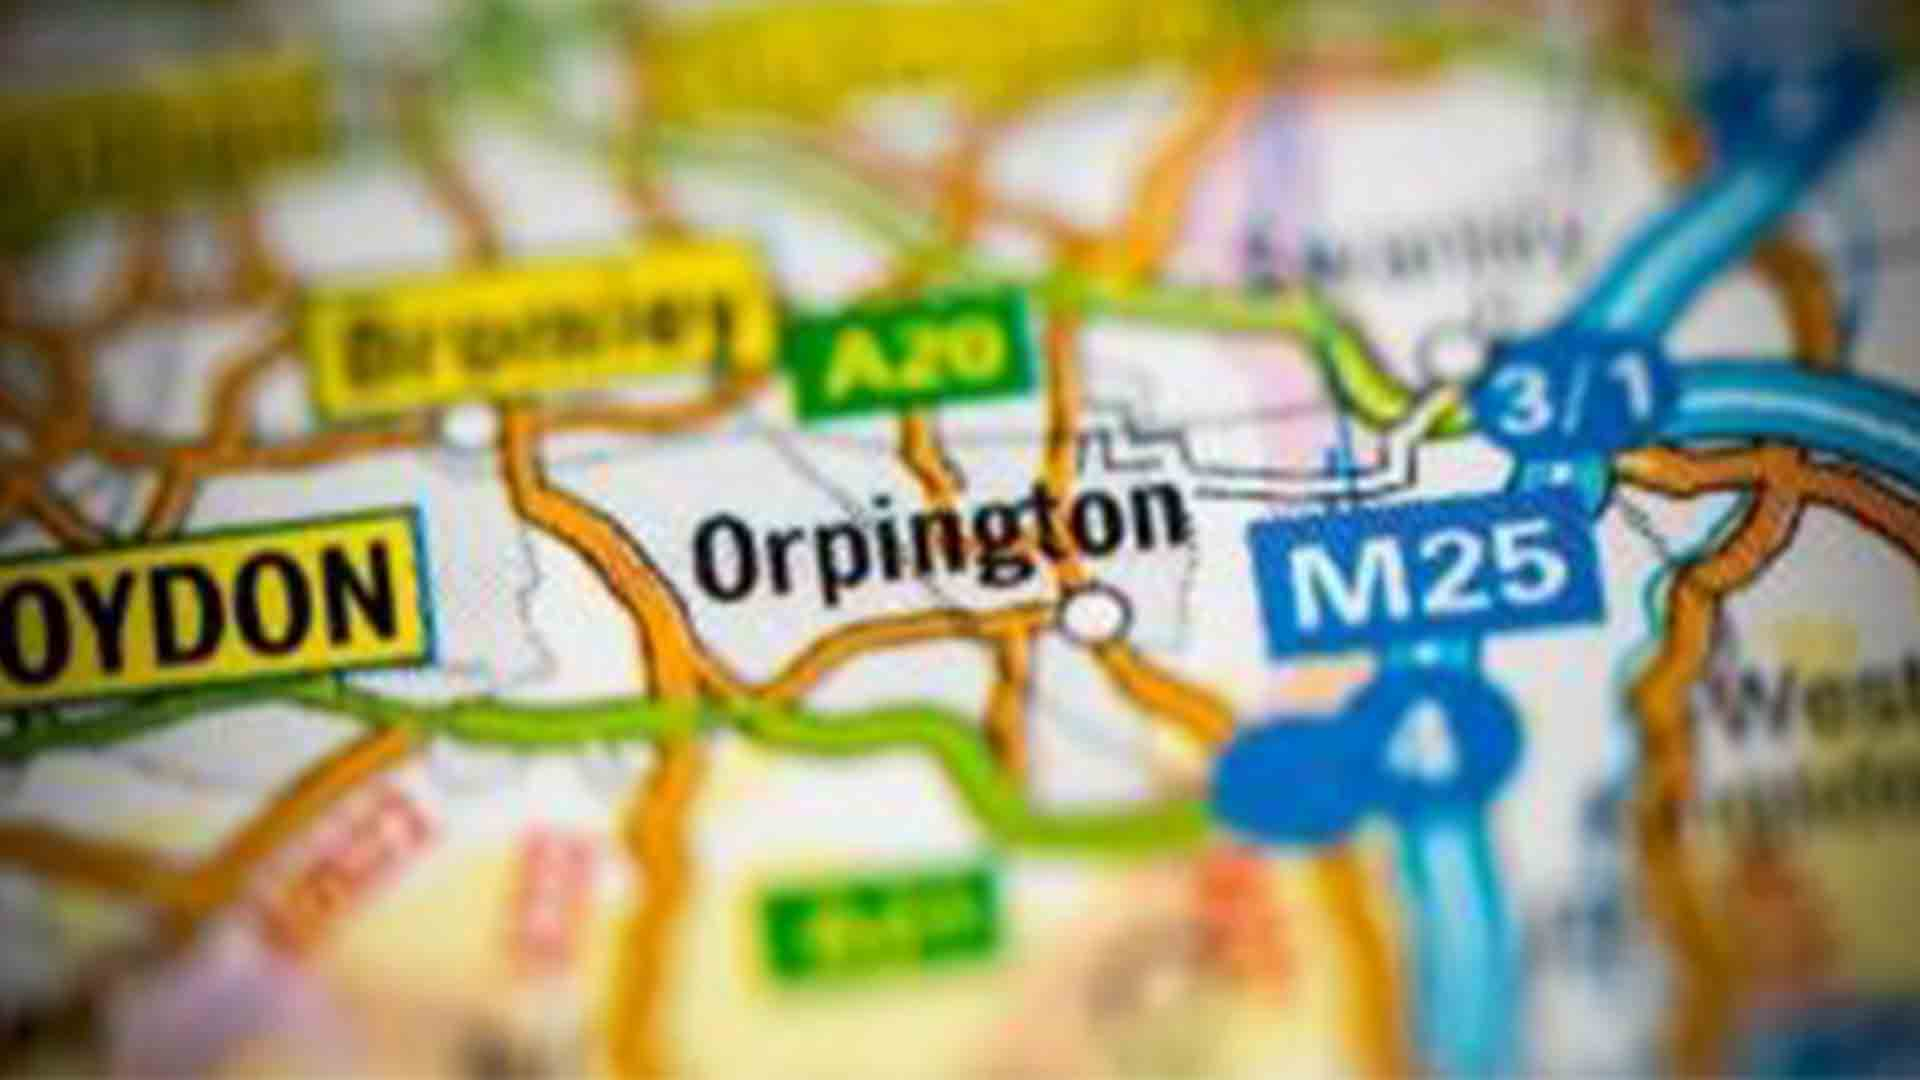 Orpington Property Investment